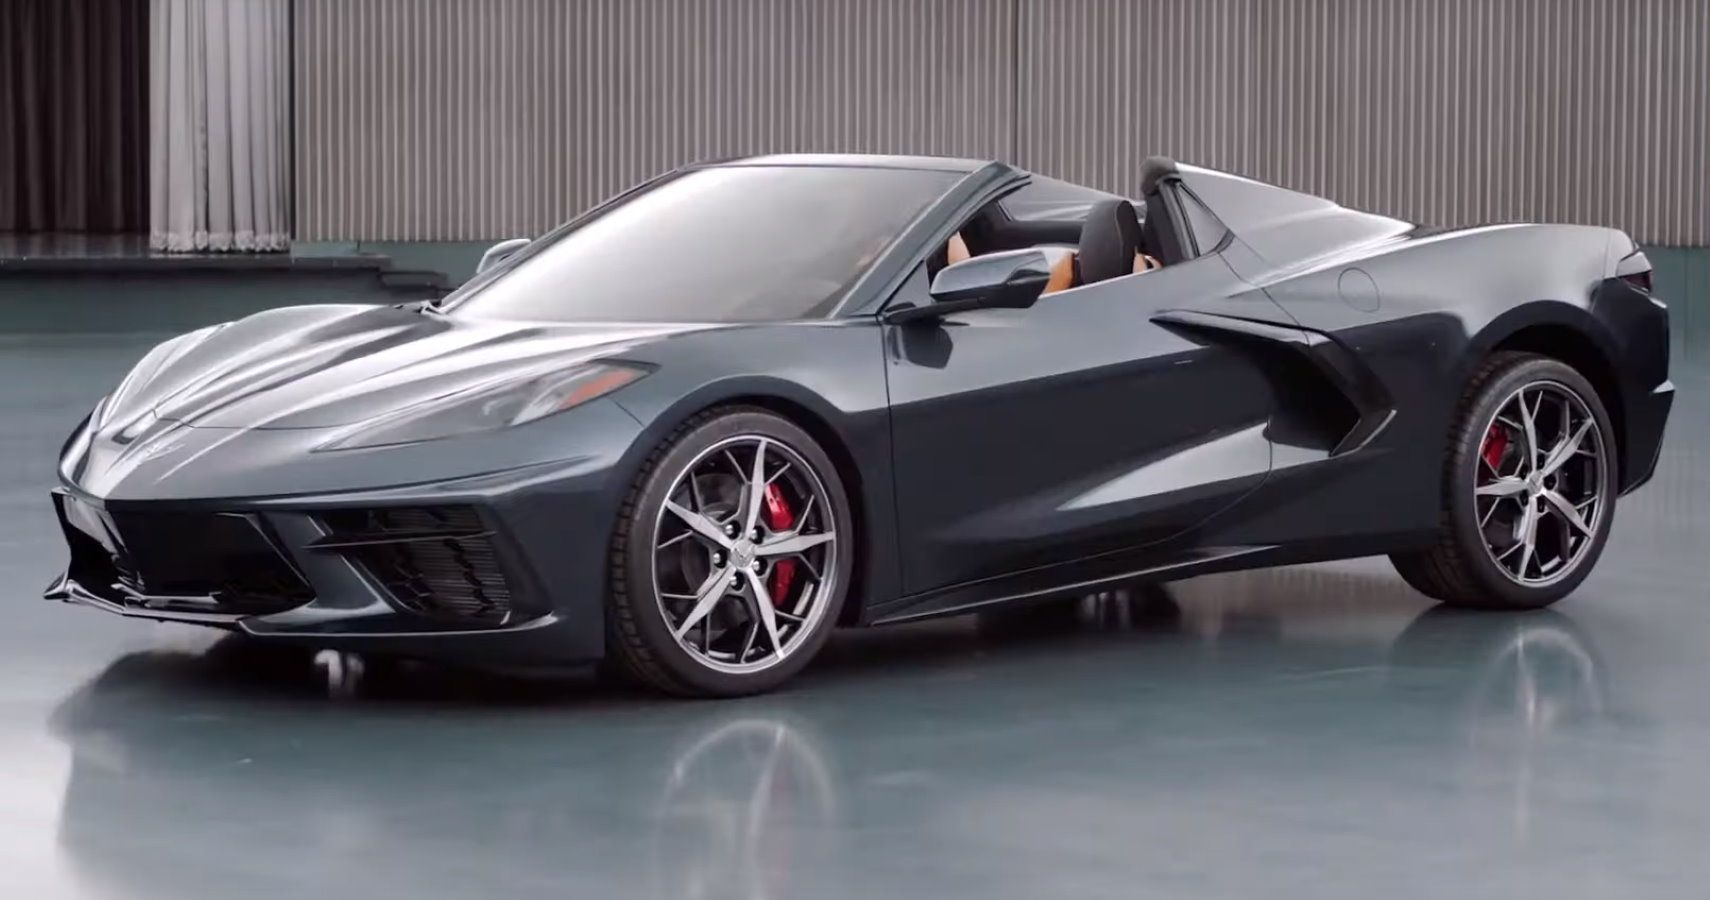 2020 Corvette Stingray Convertible To Be Revealed In ...